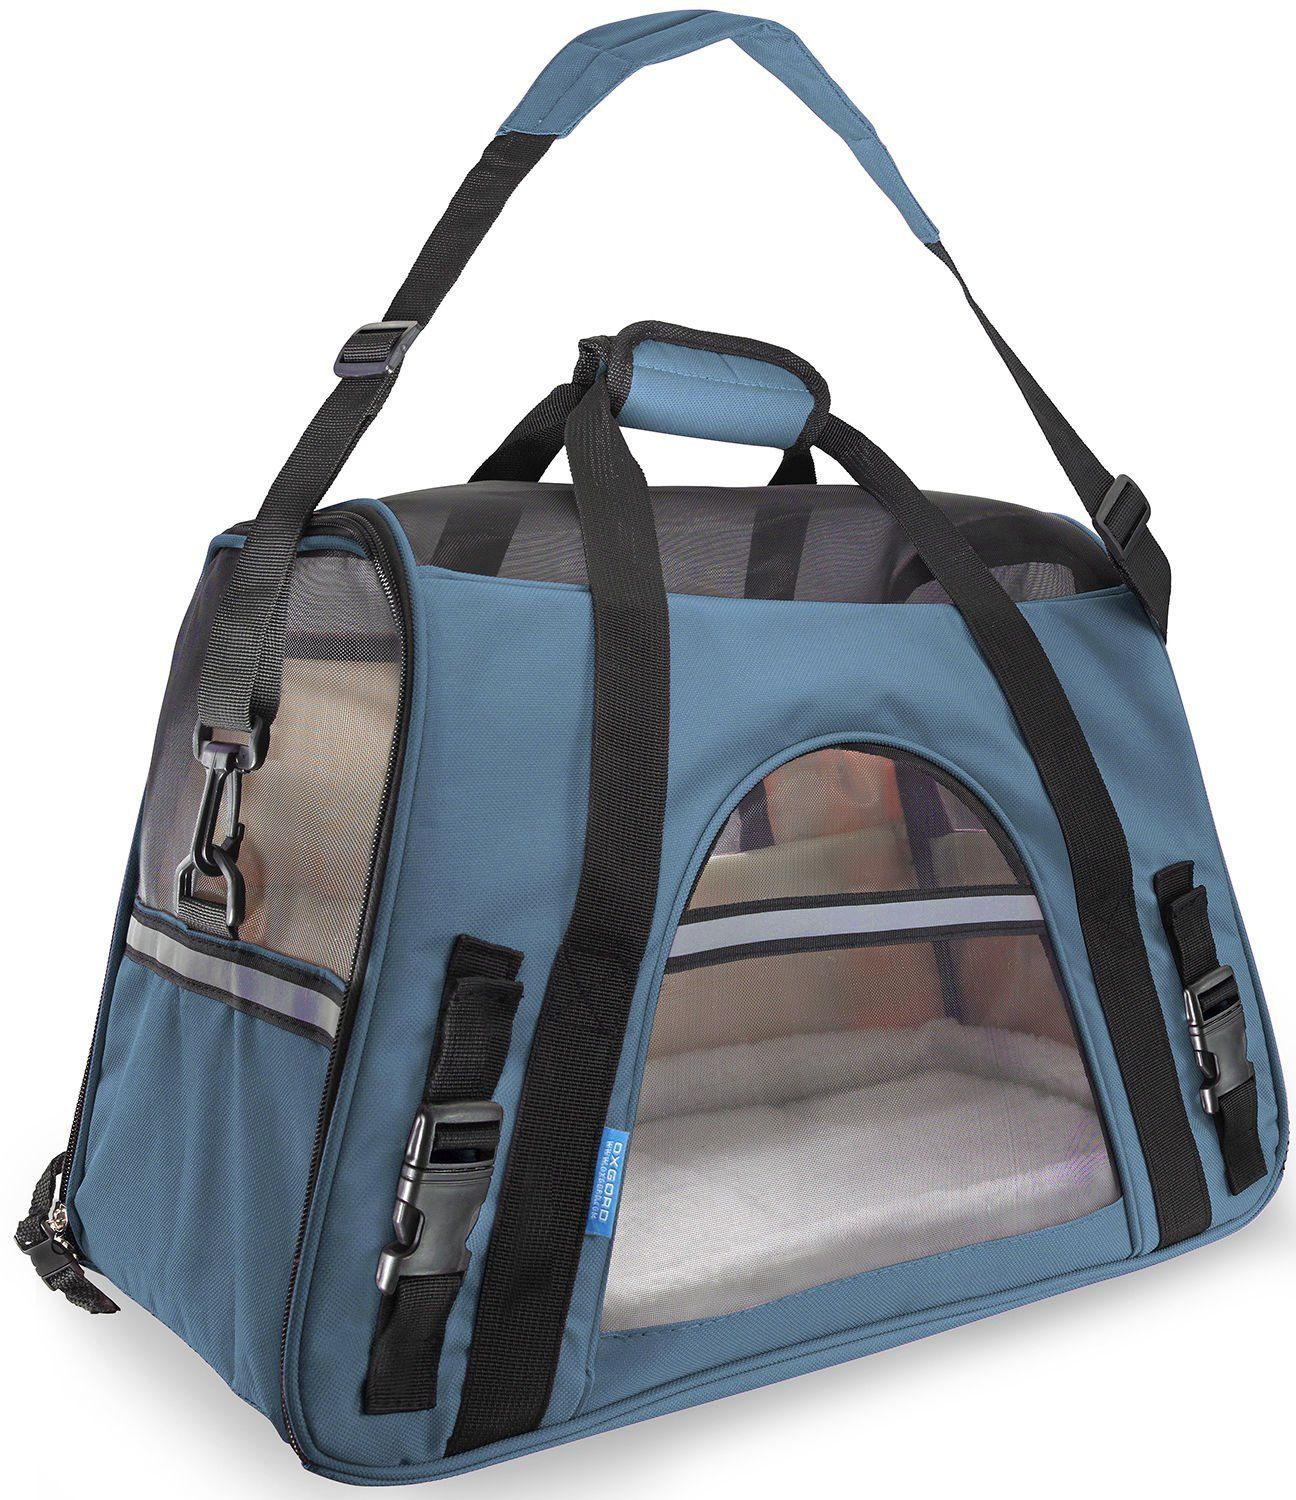 Pet Carrier Soft Sided Large Cat Dog Comfort Mineral Blue Bag Travel Approved Click Image For More Details Thi Dog Carrier Bag Pet Carrier Bag